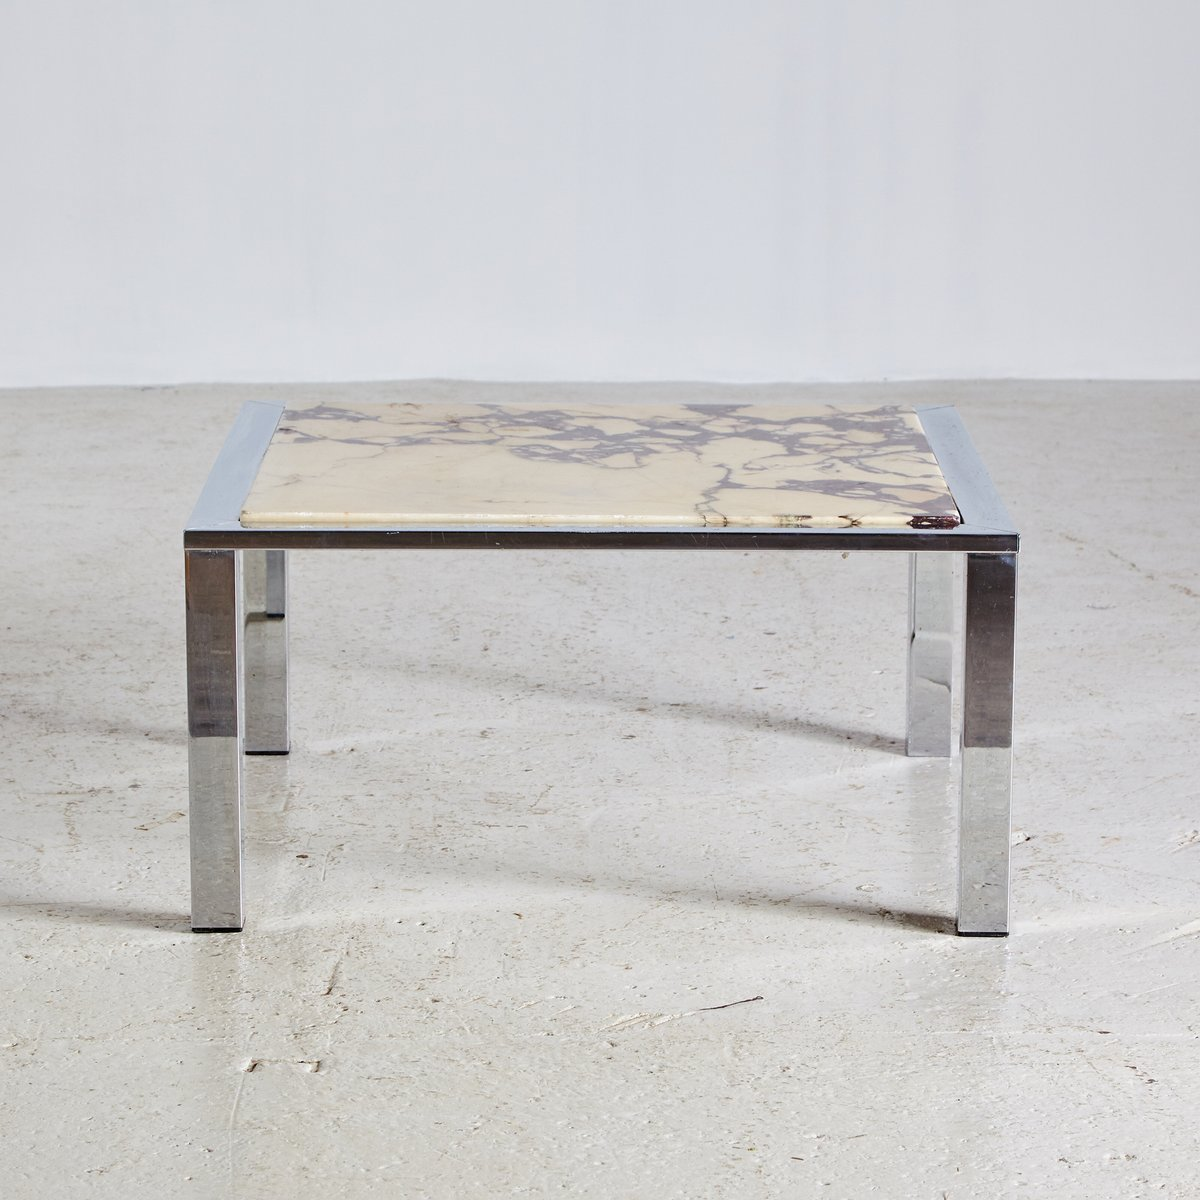 Marble And Chrome Coffee Table: Marble Top & Chrome Framed Coffee Table, 1970s For Sale At